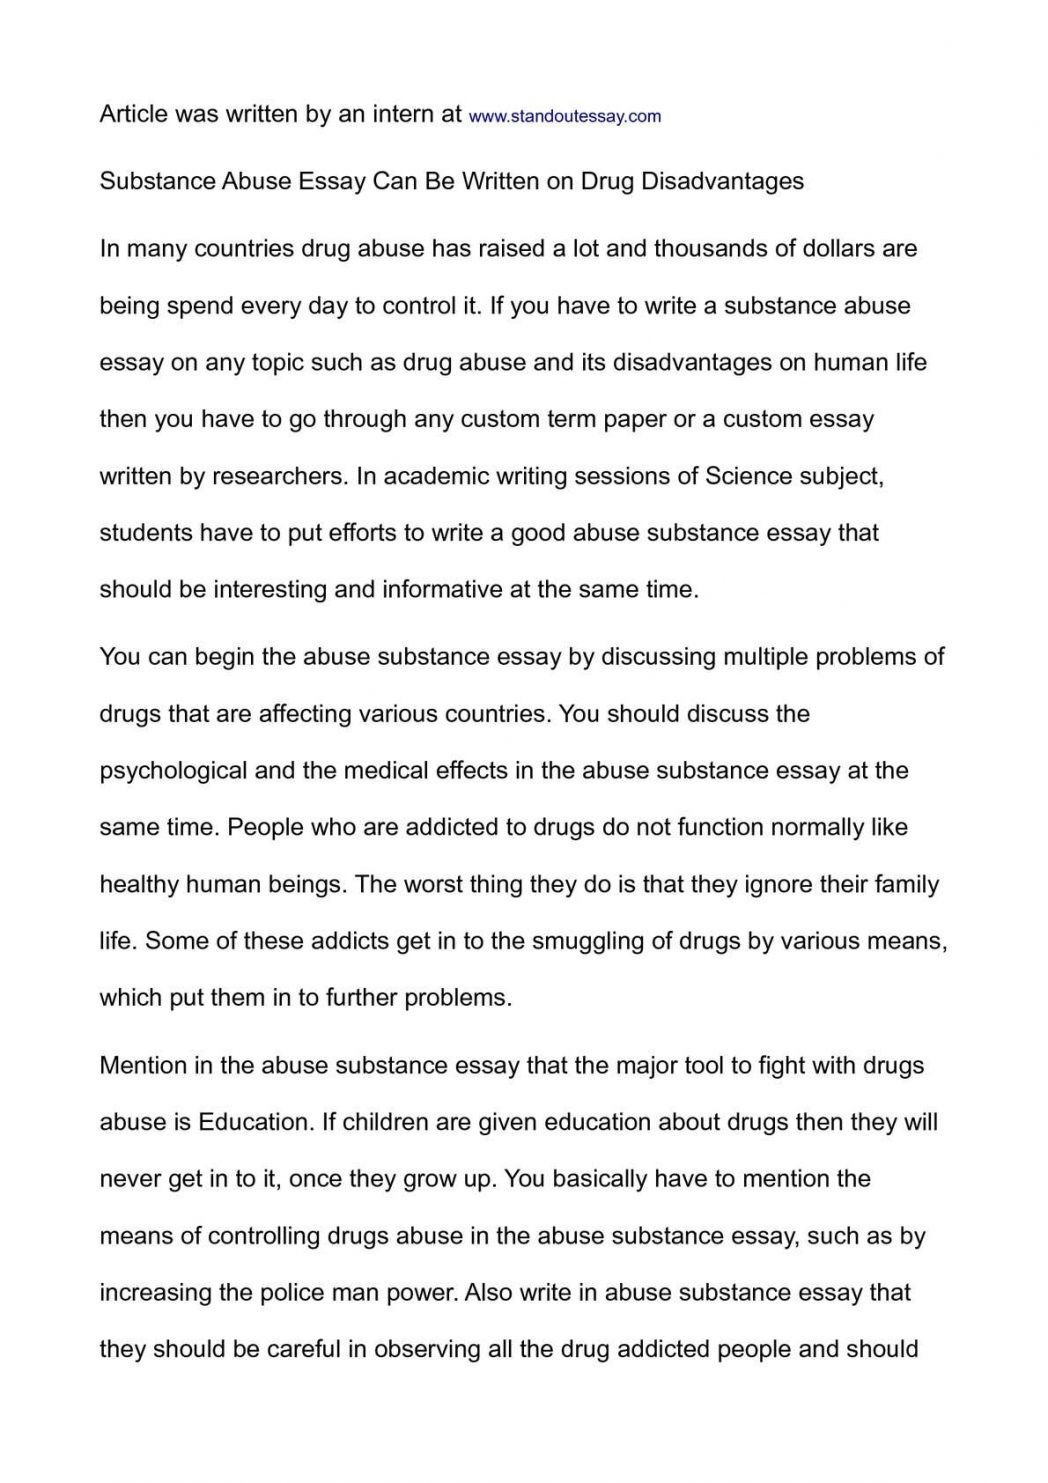 009 Essay On Gun Control Substance Abuse Essays Argumentati Persuasives Argumentative Outline Thesis Topics Conclusion Against Introduction Statement 1048x1483 Incredible Pdf Laws Stricter Full